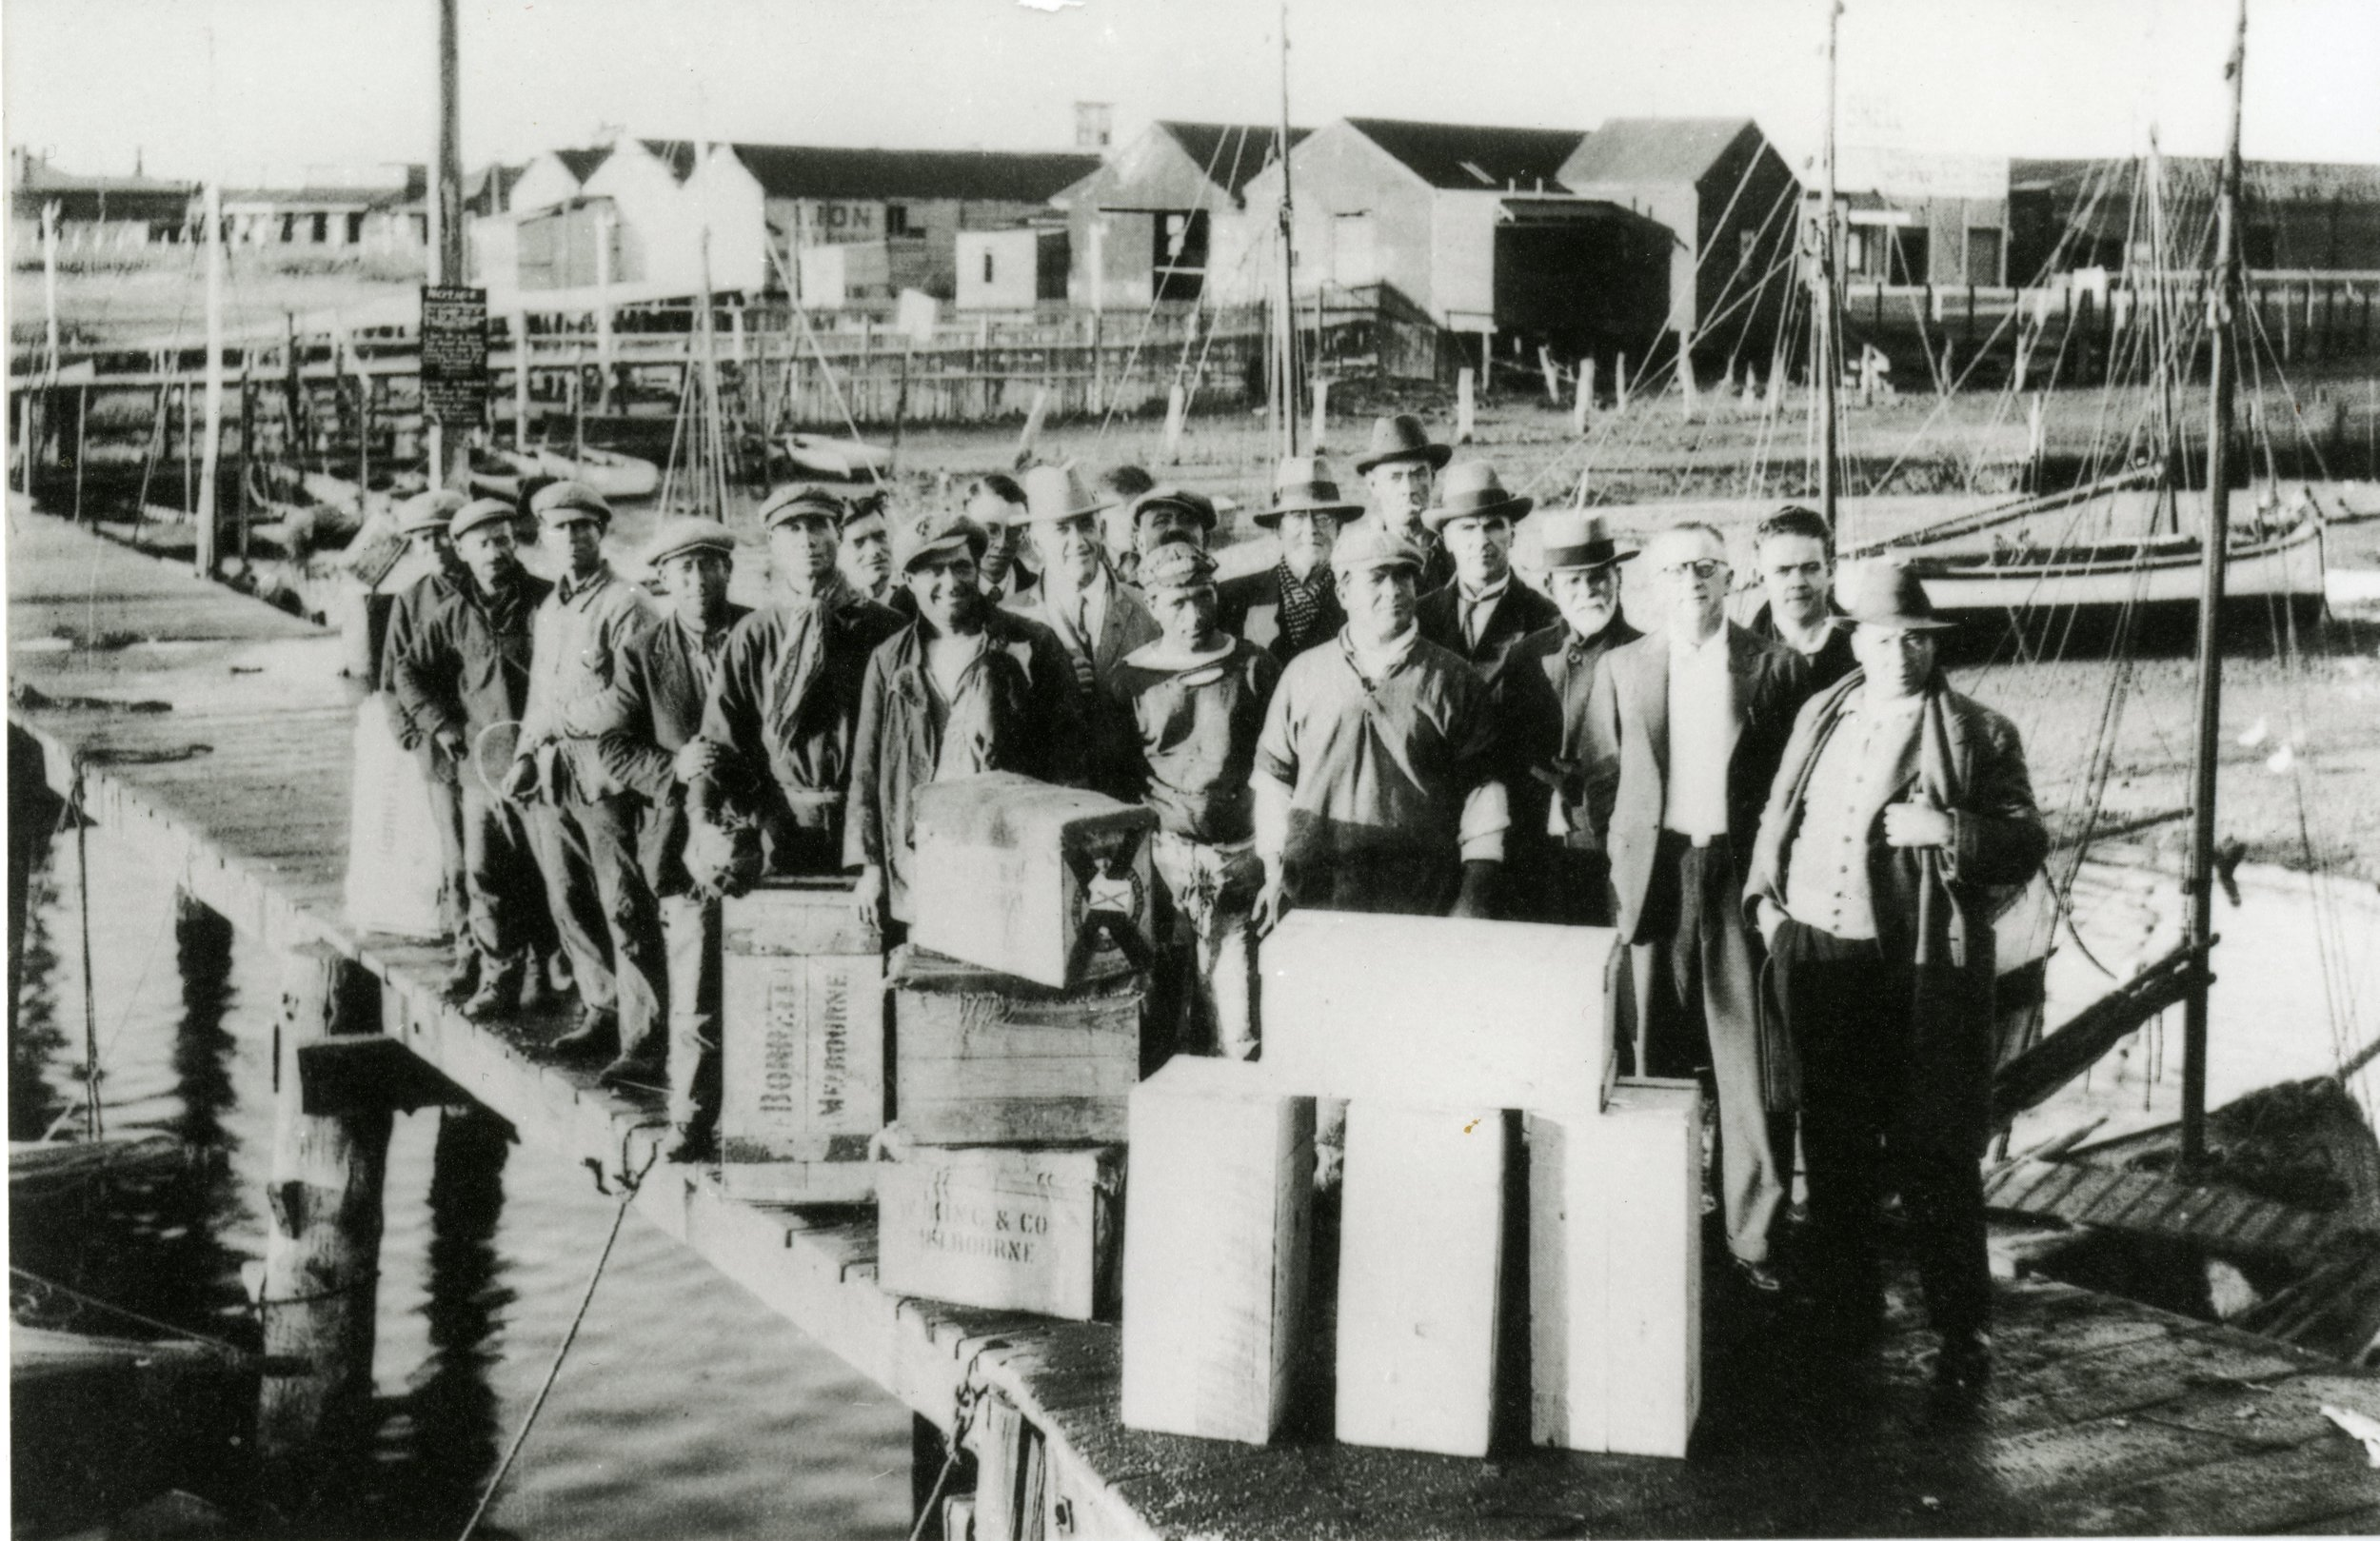 Mostly Molfettese fishermen and agents on the Port Pirie wharves in the 1930s.  PN03335 Migration Museum Collection